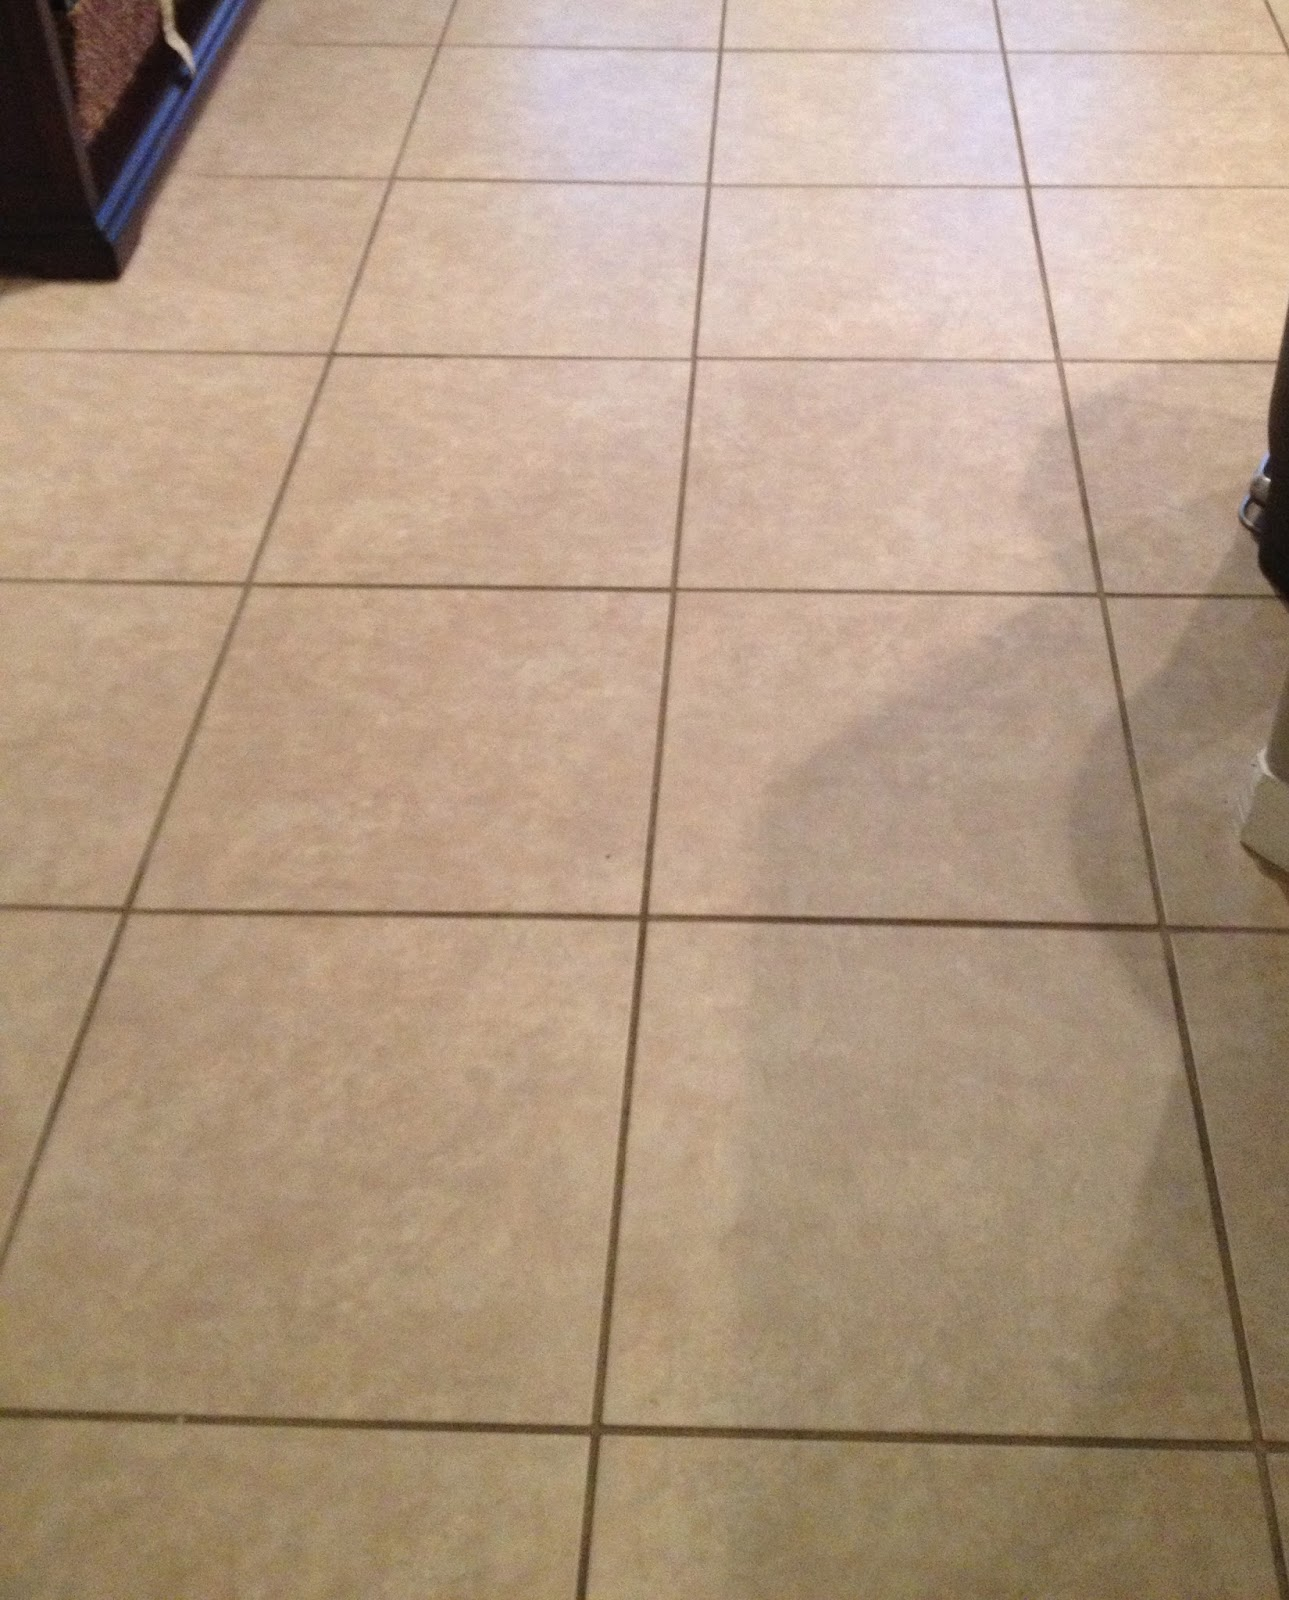 Natural safe tile floor cleaner only 3 ingredients overthrow tile floor cleaner diy the hydrogen peroxide and the vinegar together really work well together to kill bacteria you can even add tea tree essential oil doublecrazyfo Choice Image